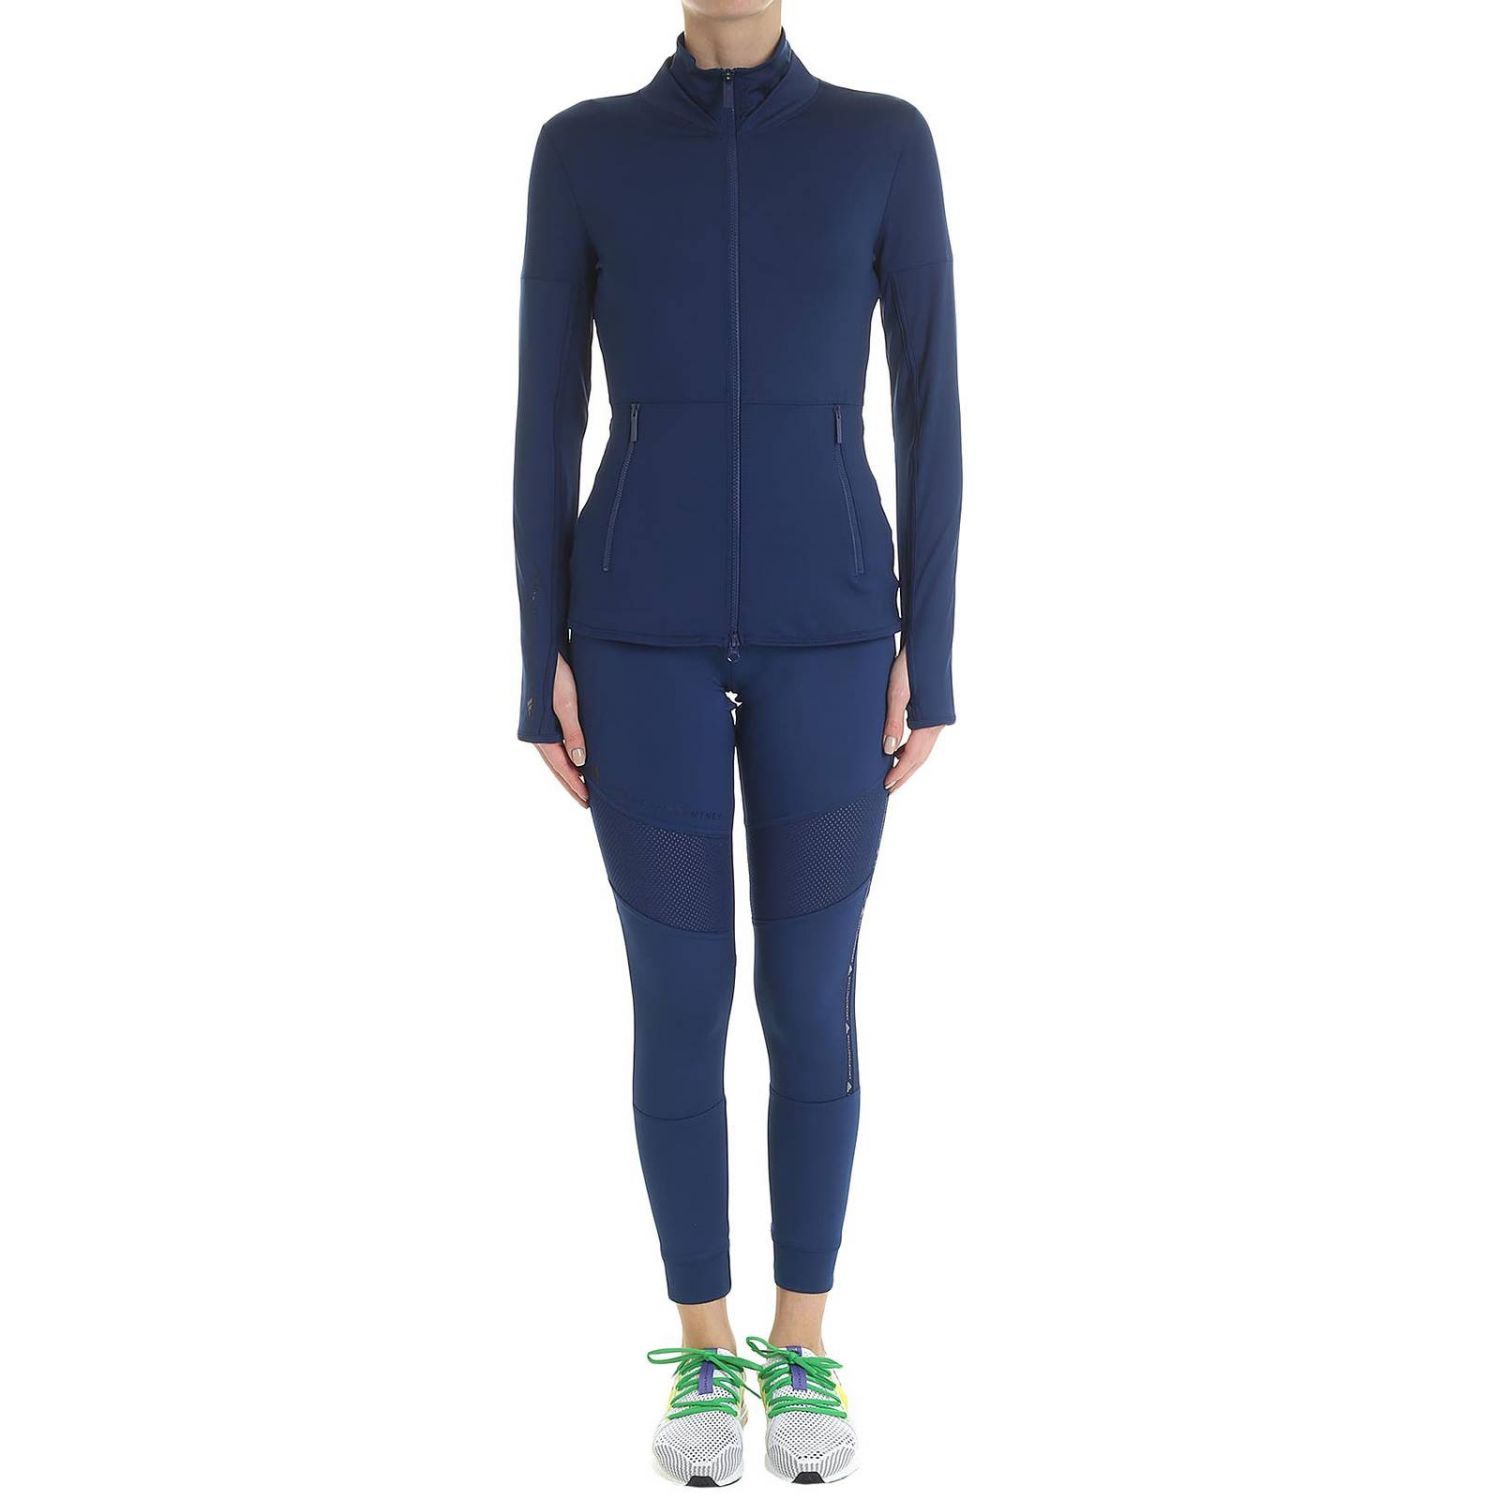 Футболка Adidas By Stella Mccartney: Футболка Женское Adidas By Stella Mccartney синий 5